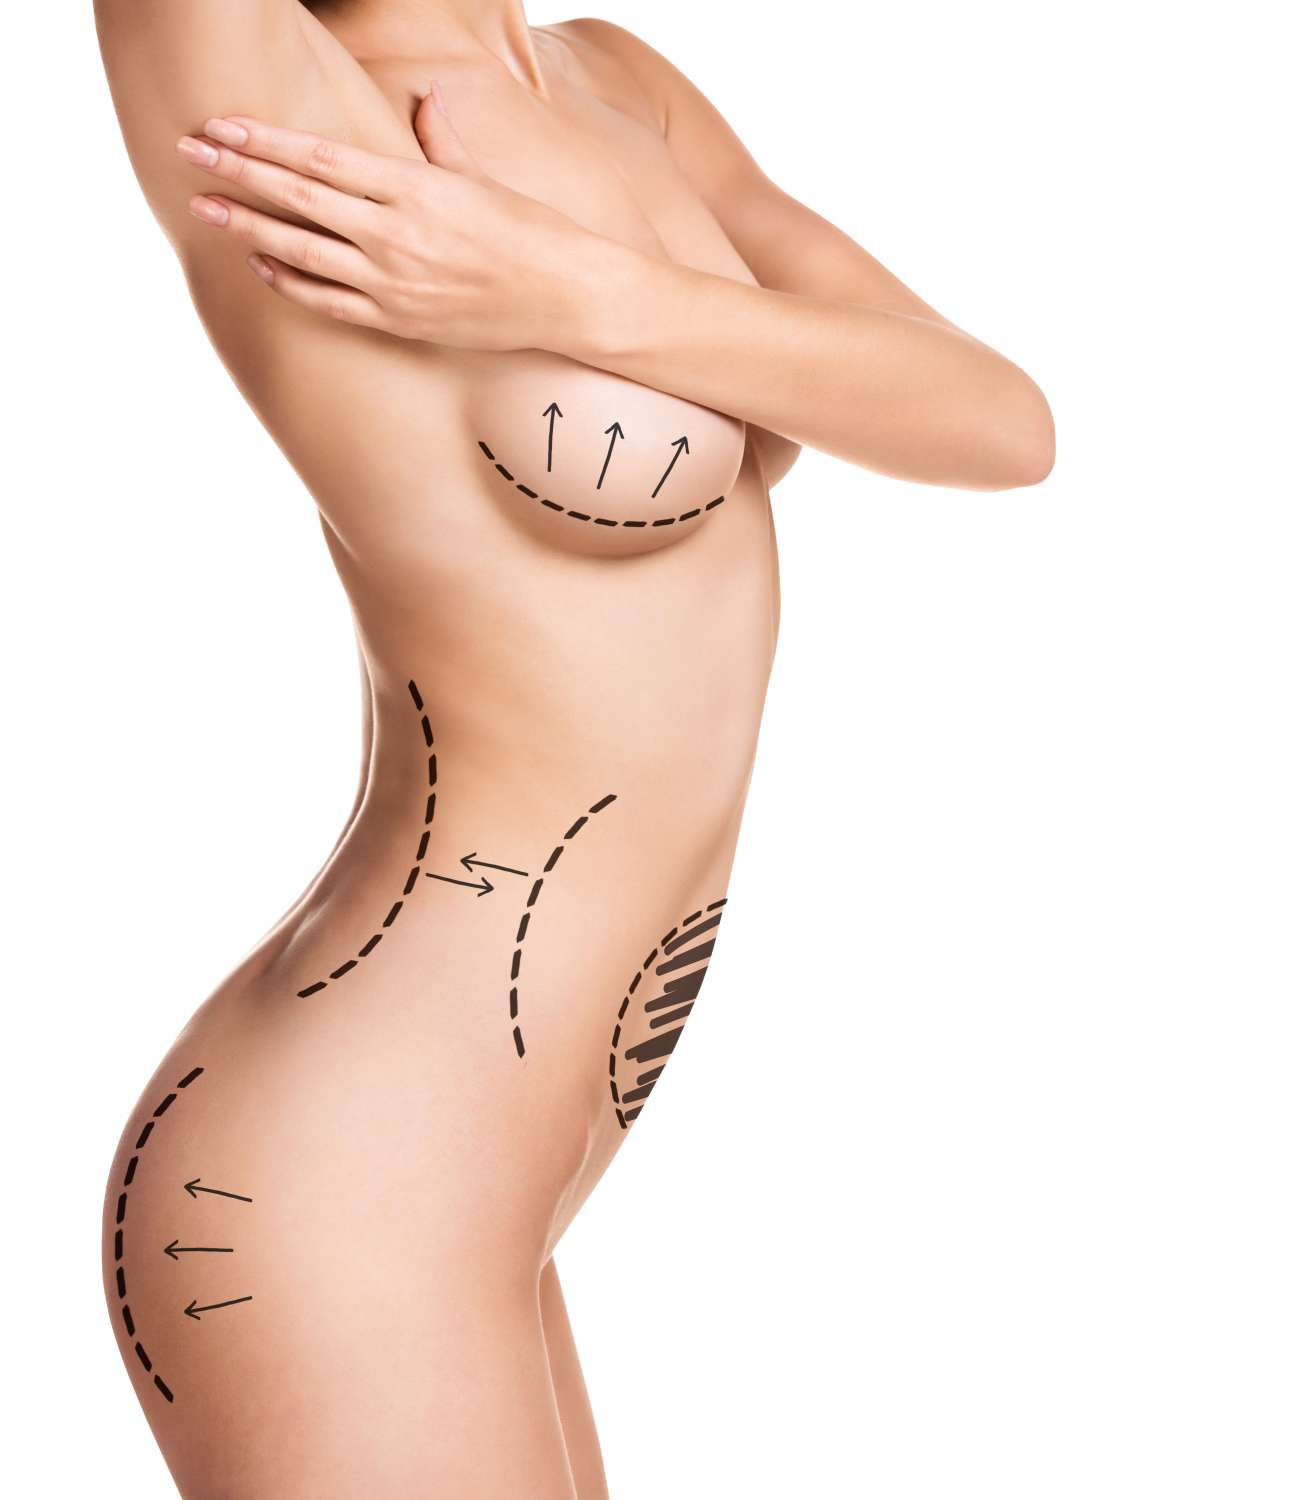 Pain after liposuction